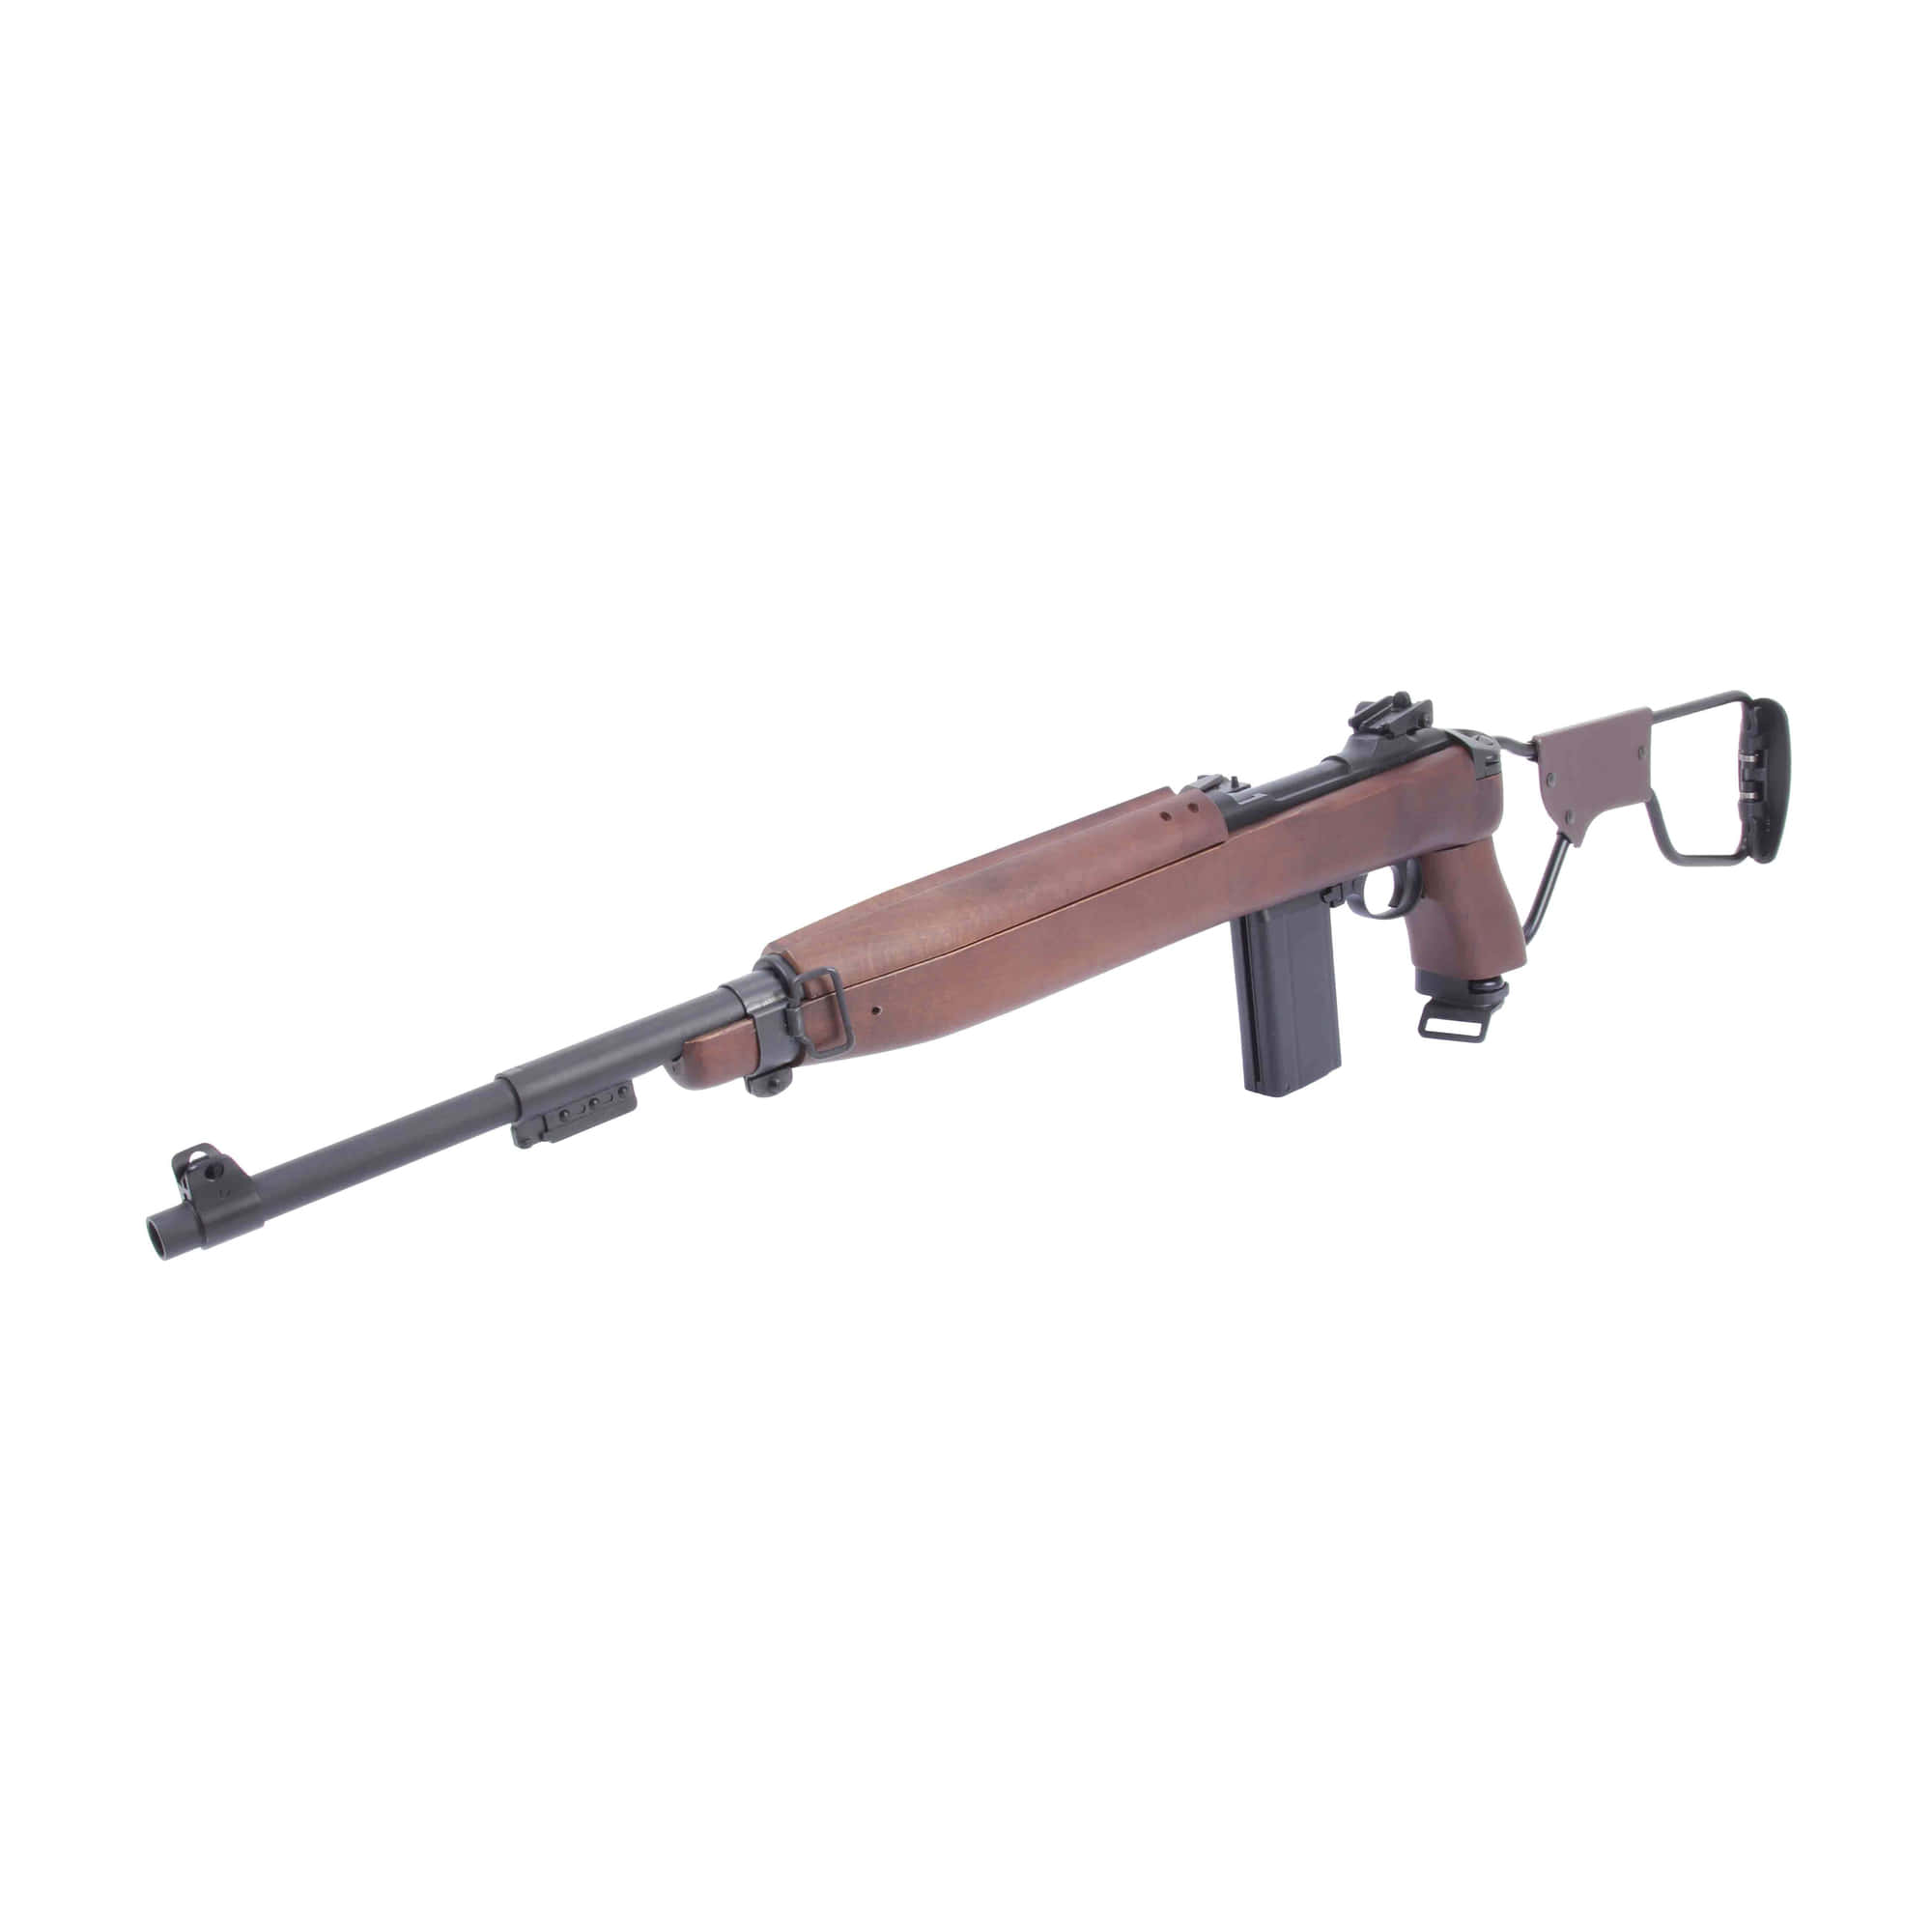 LE6030-5-Réplique M1A1 Paratrooper Co2 - KING ARMS - LE6030C